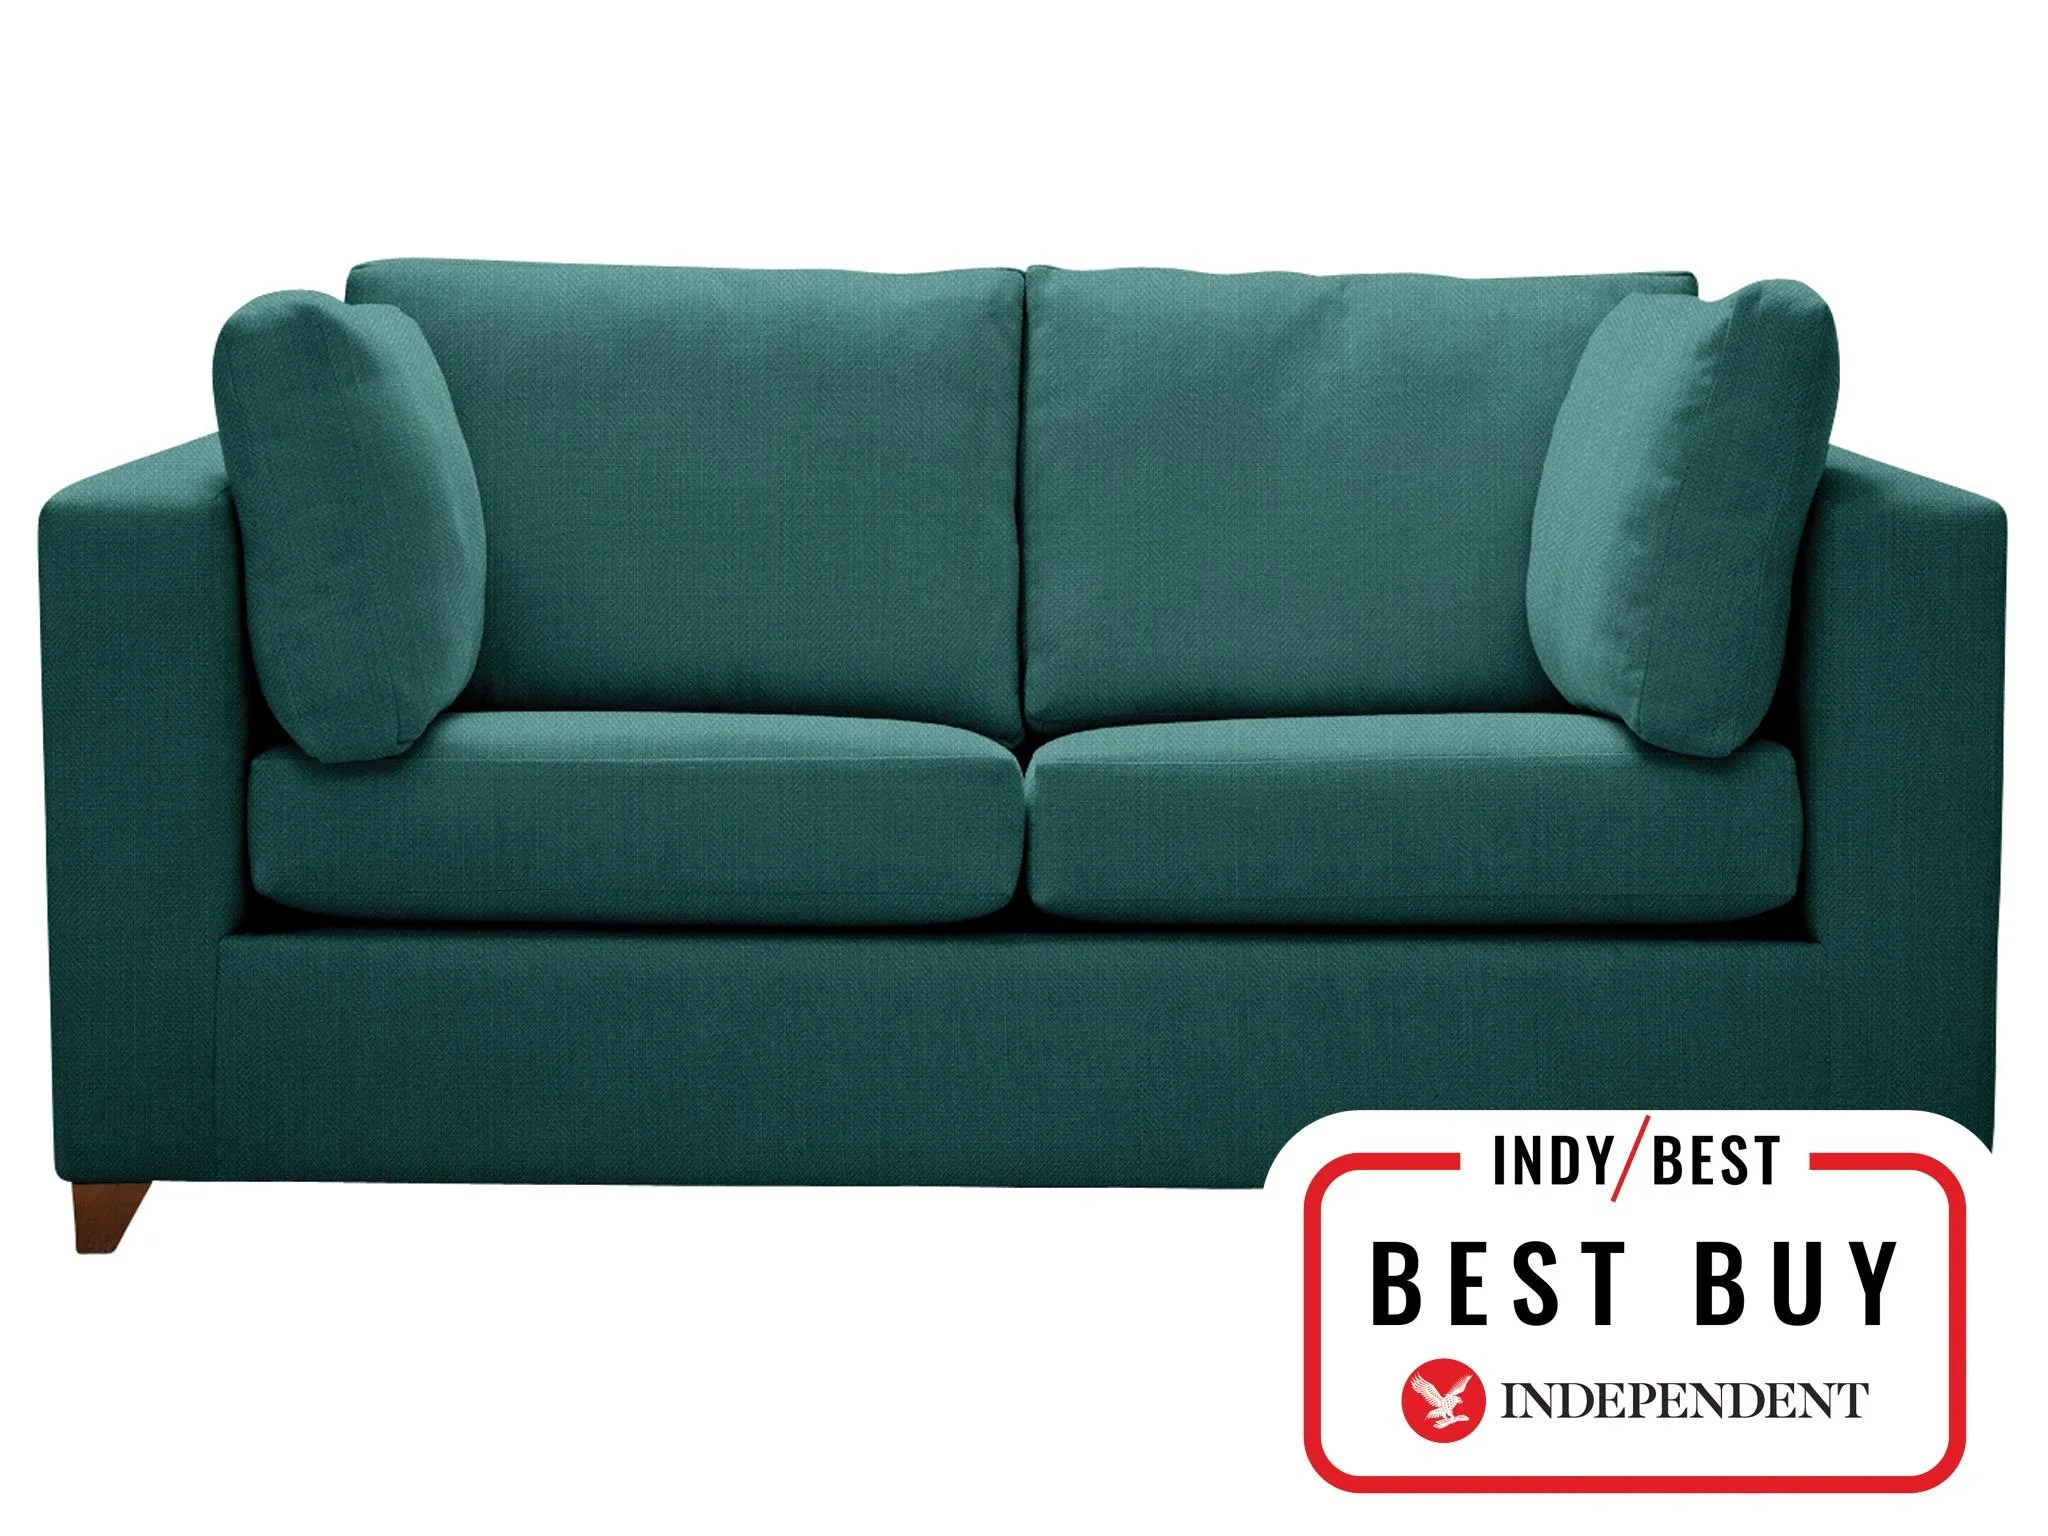 Innovation Schlafsofas Berlin 12 Best Sofa Beds The Independent